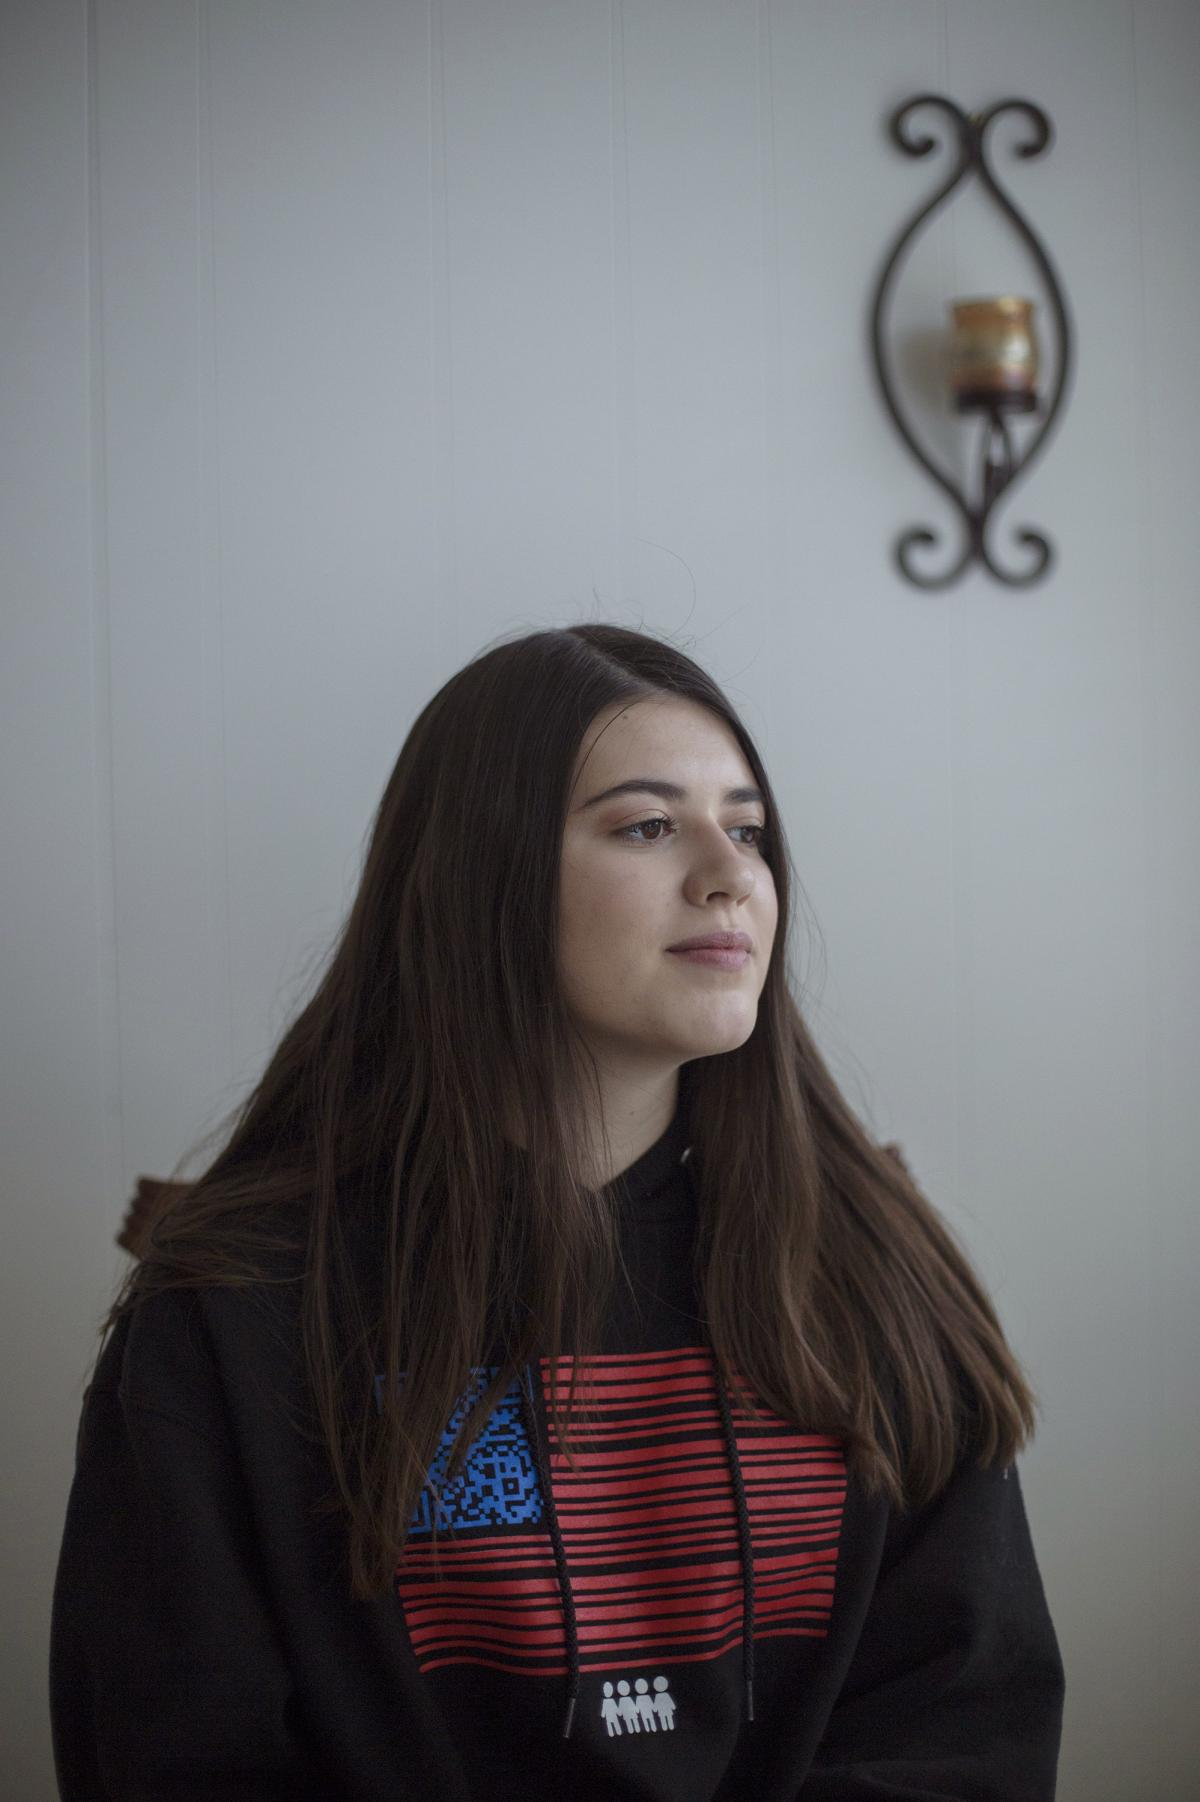 Evelyn Schentrup wears a sweatshirt designed by students involved with the March for Our Lives organization. Since the shooting and moving with her family across the country, Evelyn has struggled with anxiety and enrolled in online high school classes.